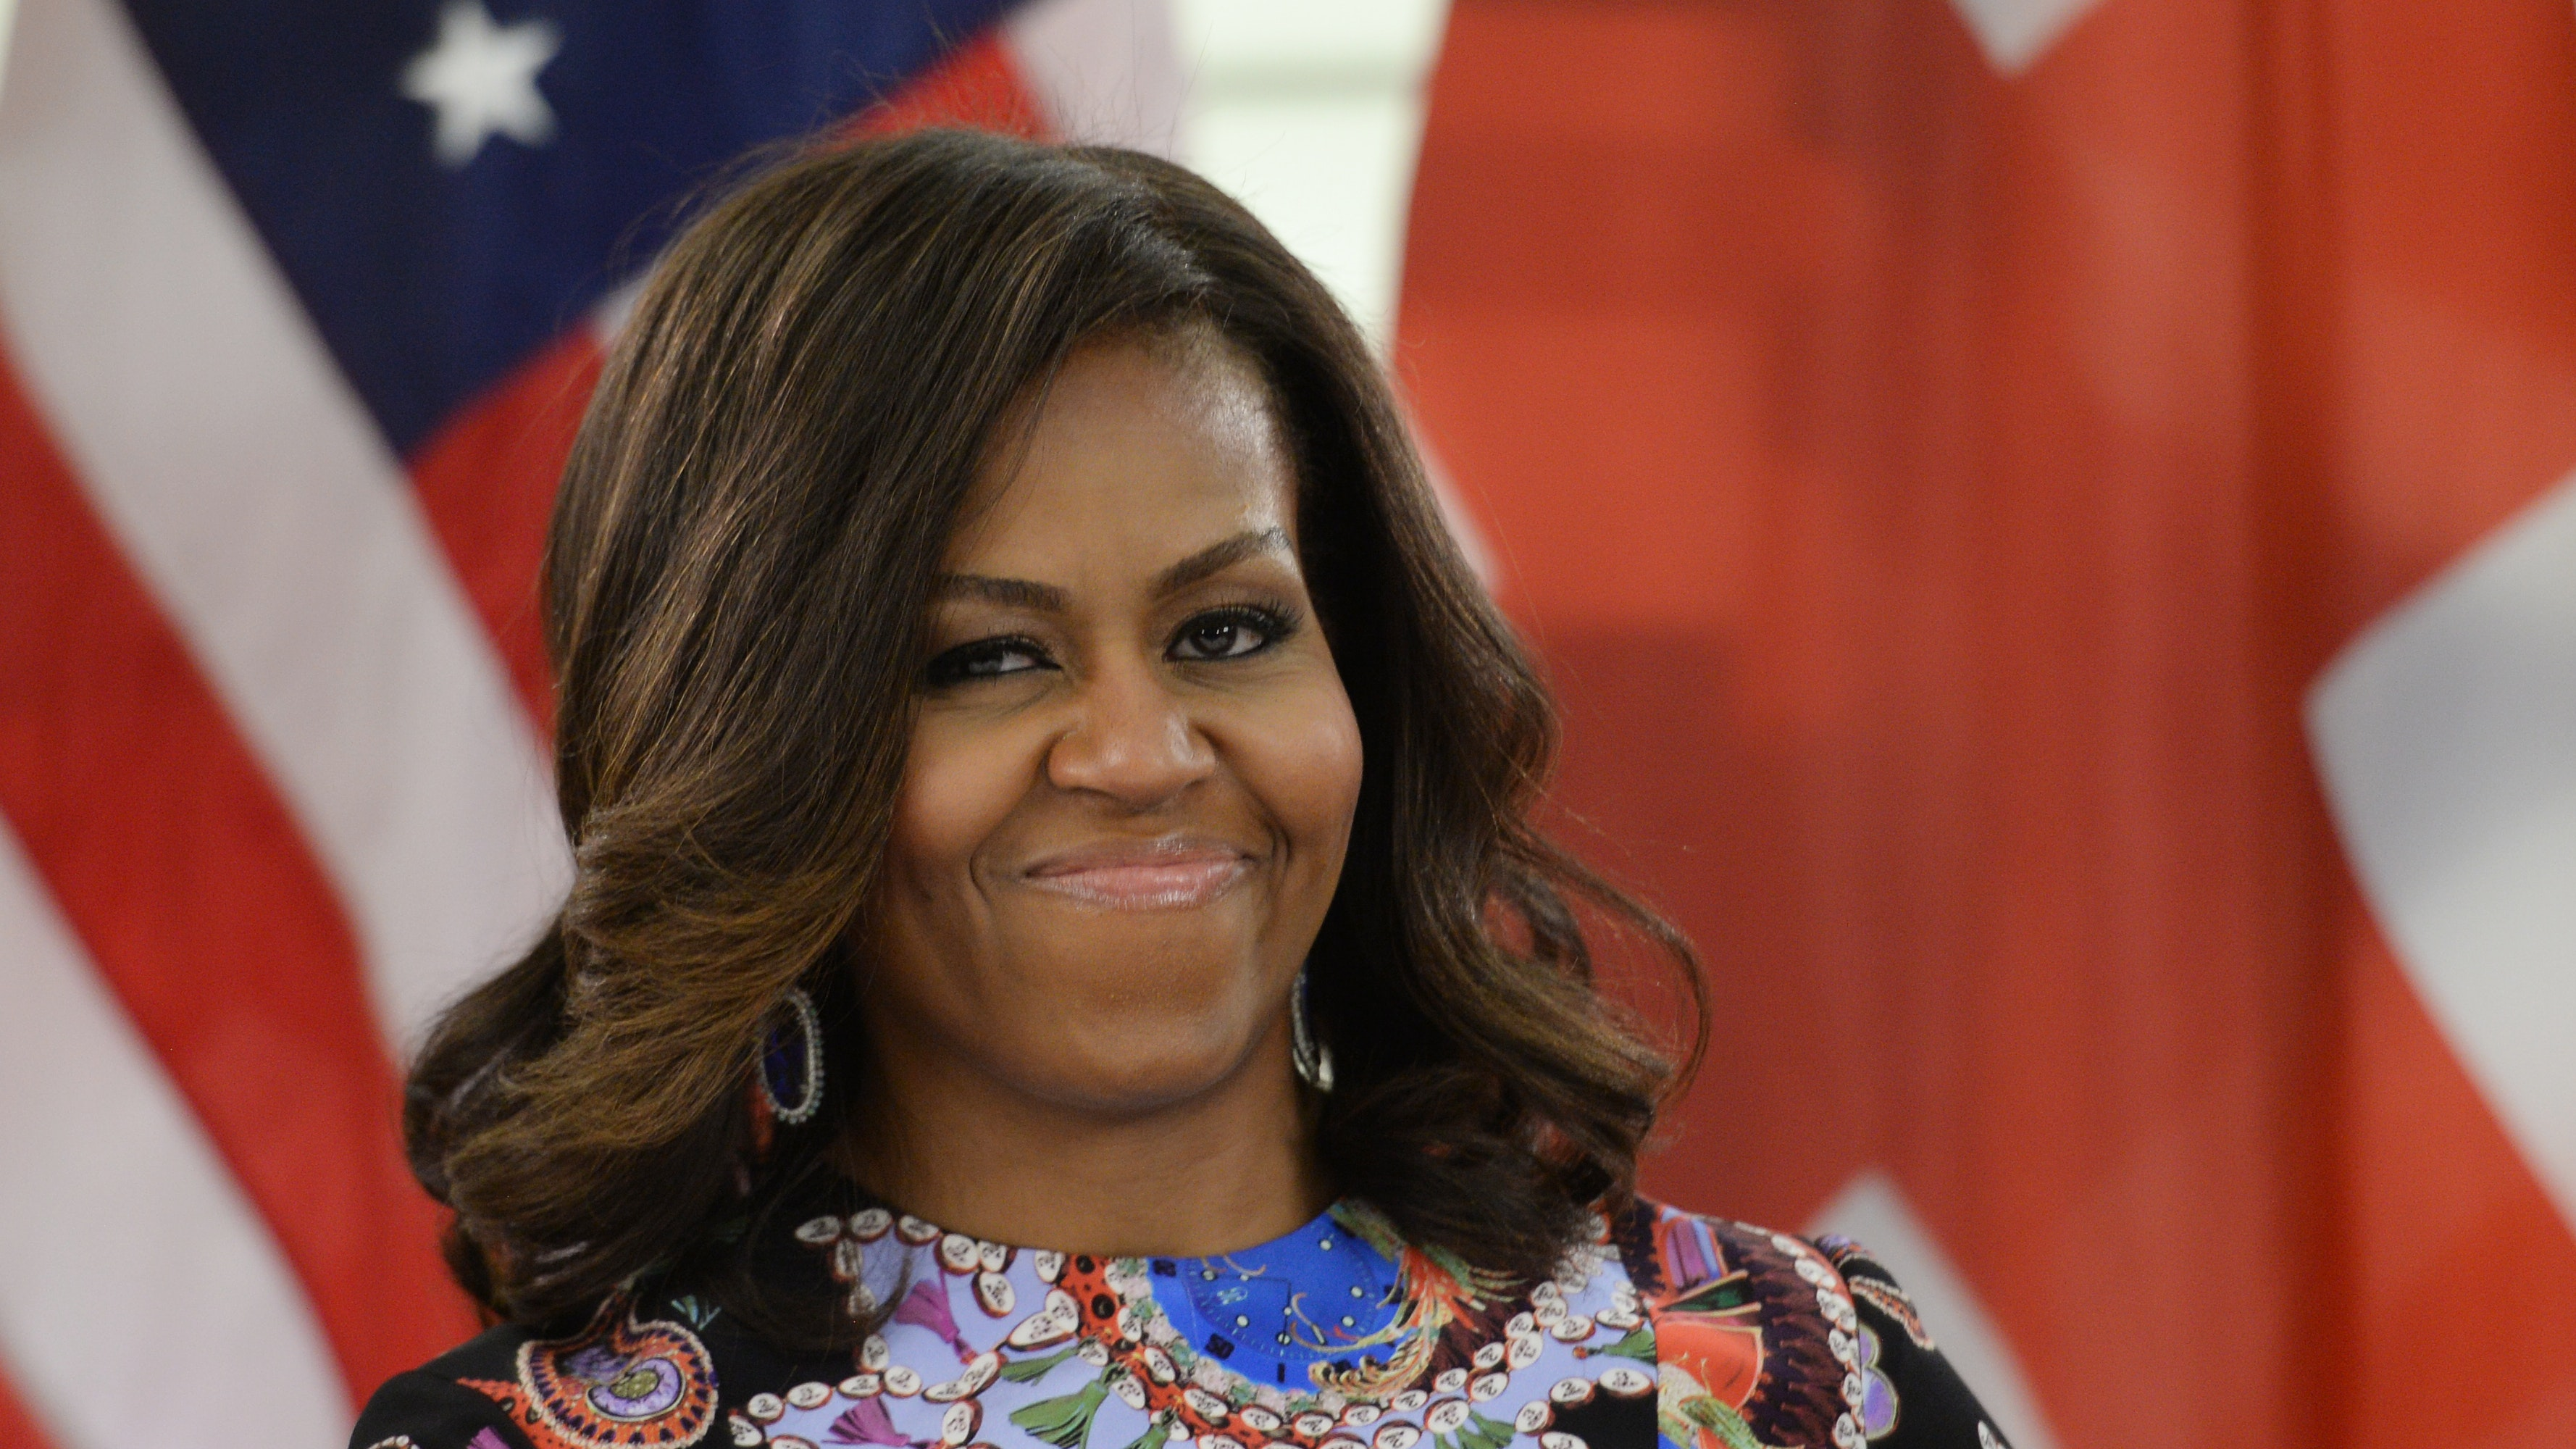 Michelle Obama set to release 'Becoming' memoir in November